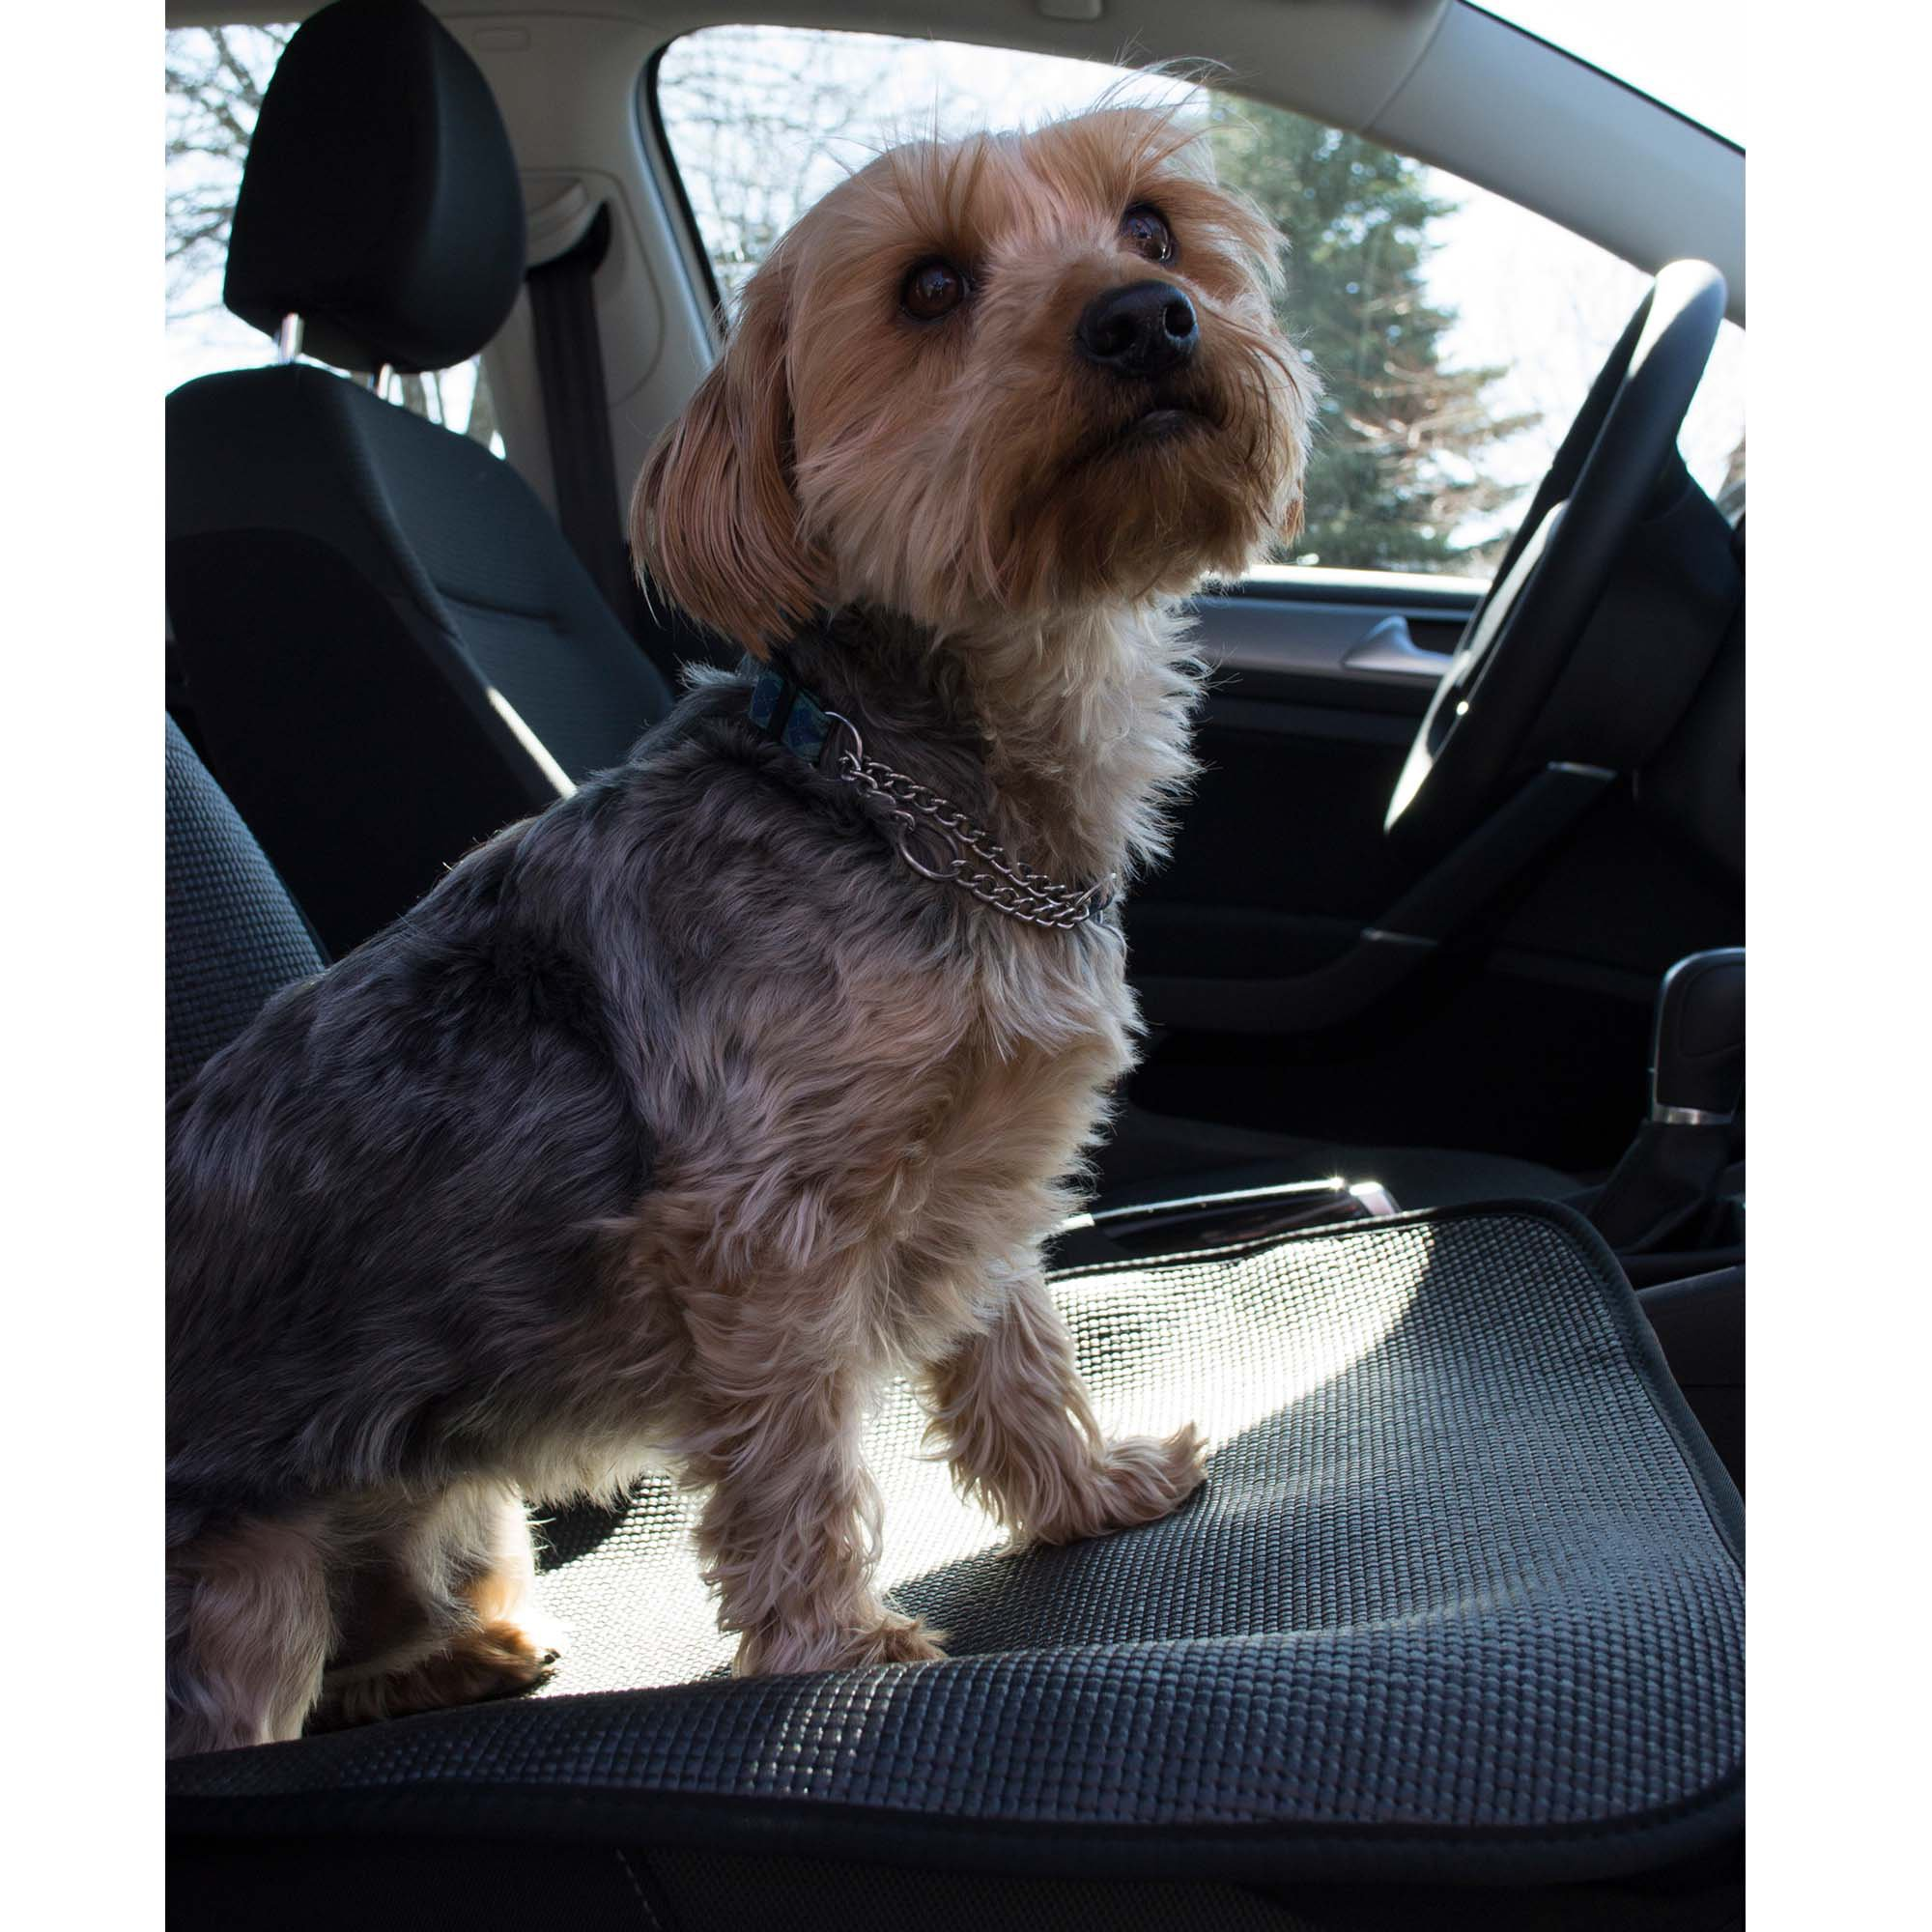 Stayjax Pet Products Bucket Seat Bottom Car Seat Cover Petco